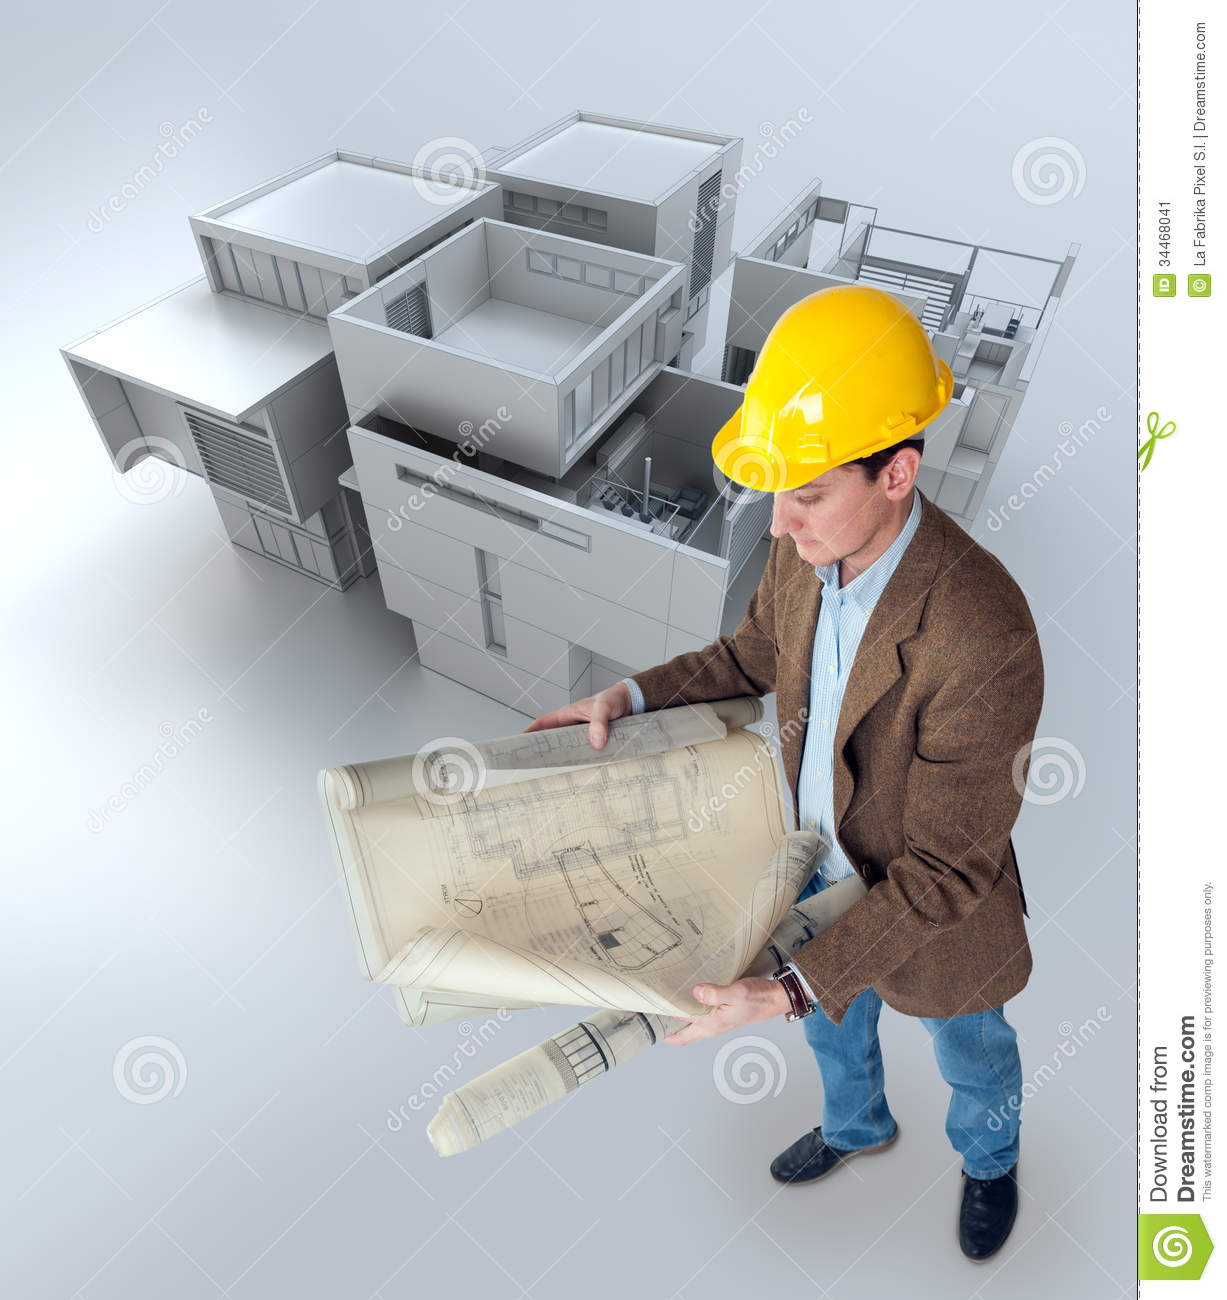 Architect and mockup stock image image 34468041 for Looking for an architect to design a house